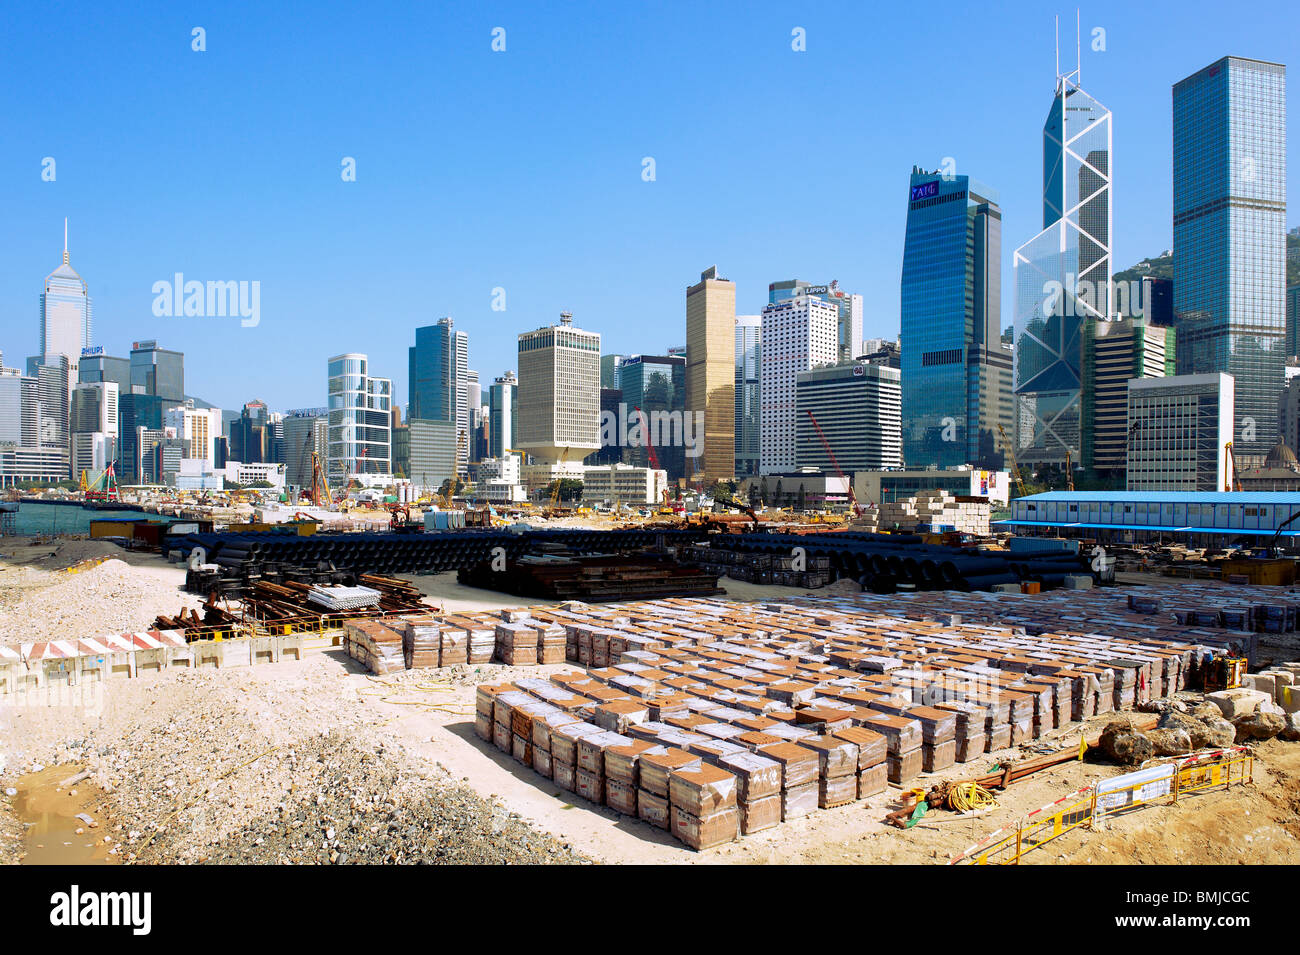 Construction goes on still in Hong Kong, despite the severe shortage of land, they have been reclaiming sea to continue - Stock Image